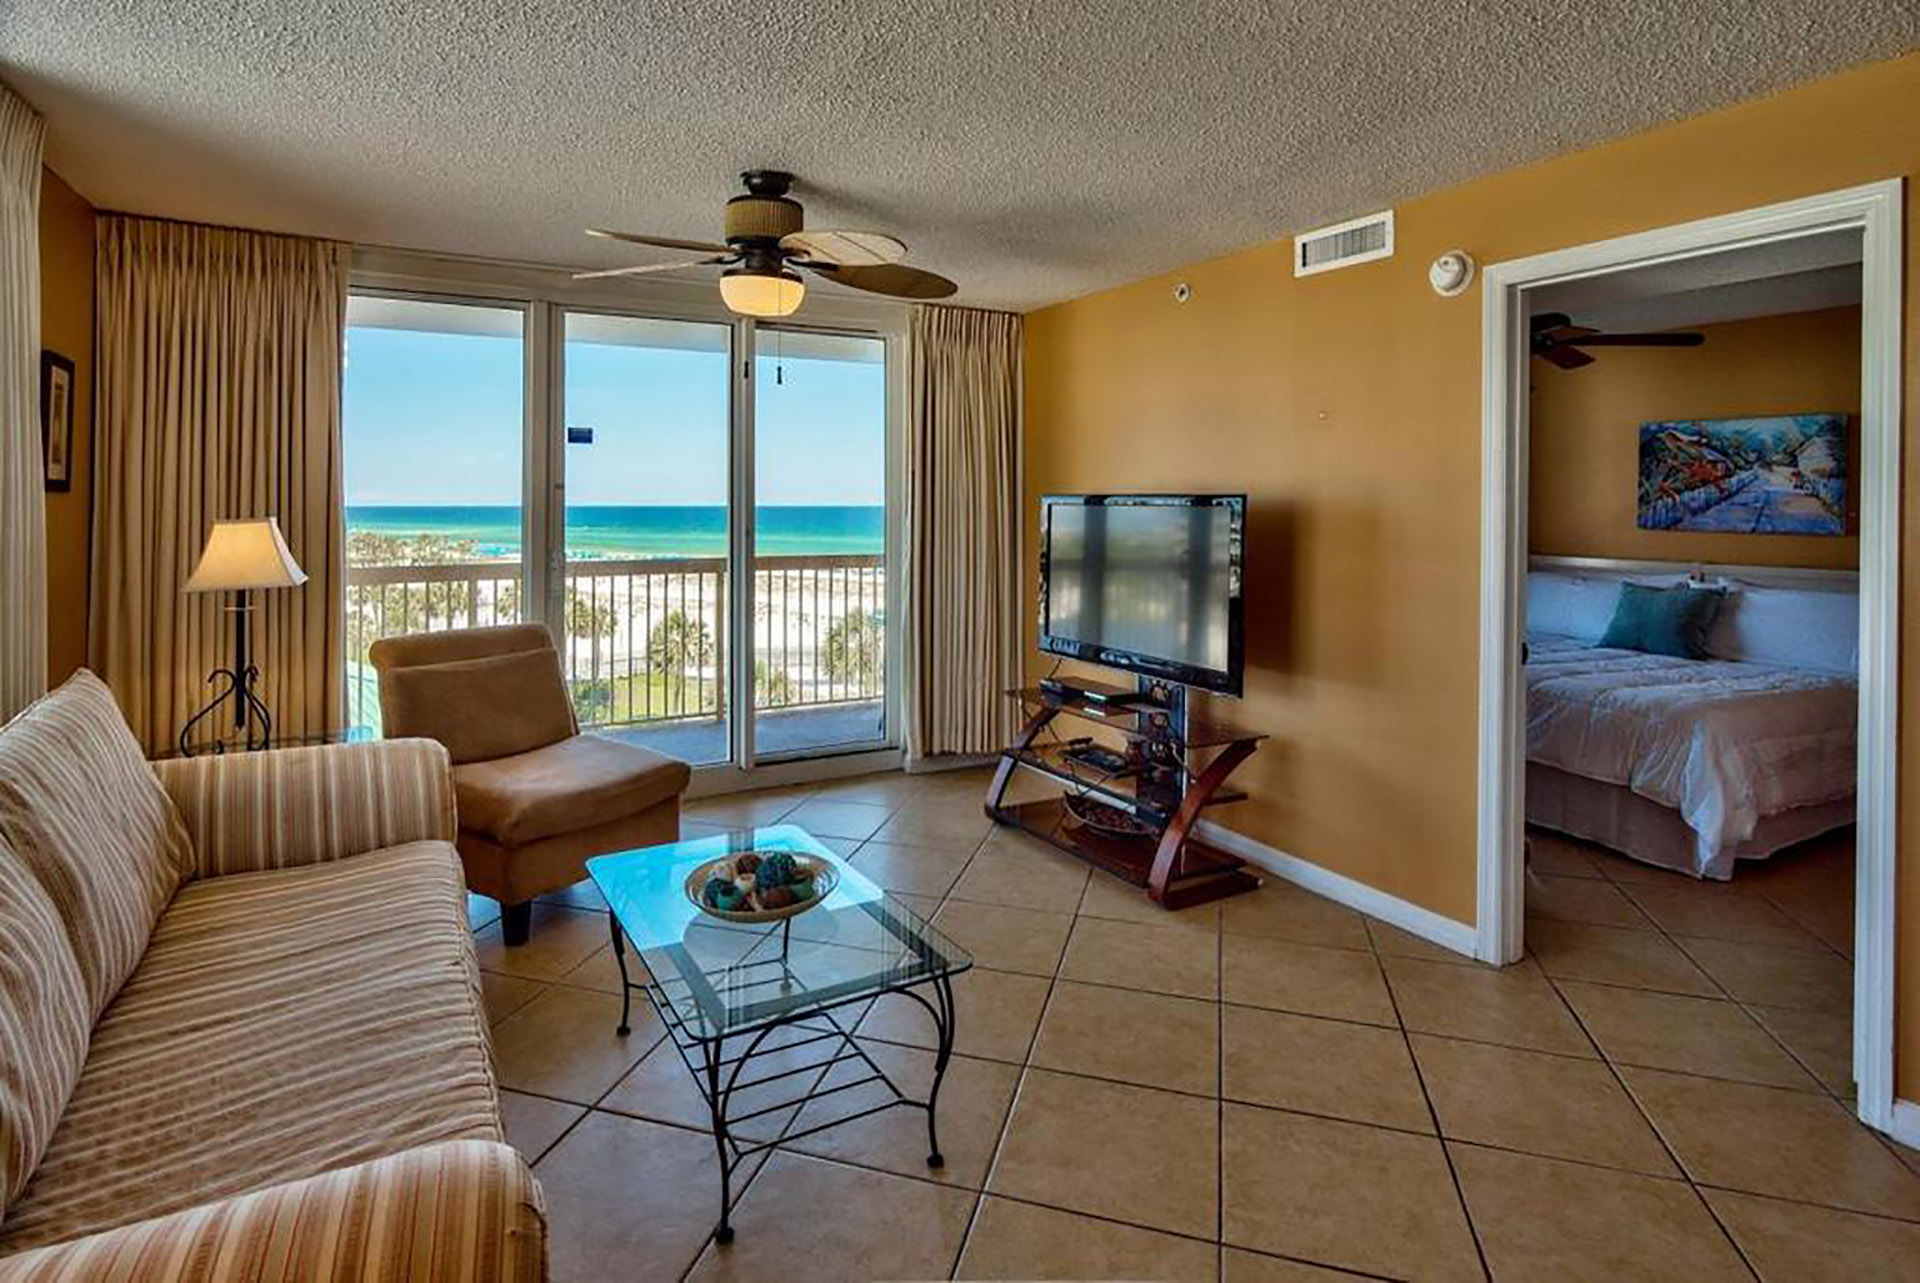 2BR Direct on Pelican Beach and Sands, Great Gulf View, Spacious, Modern, Wifi